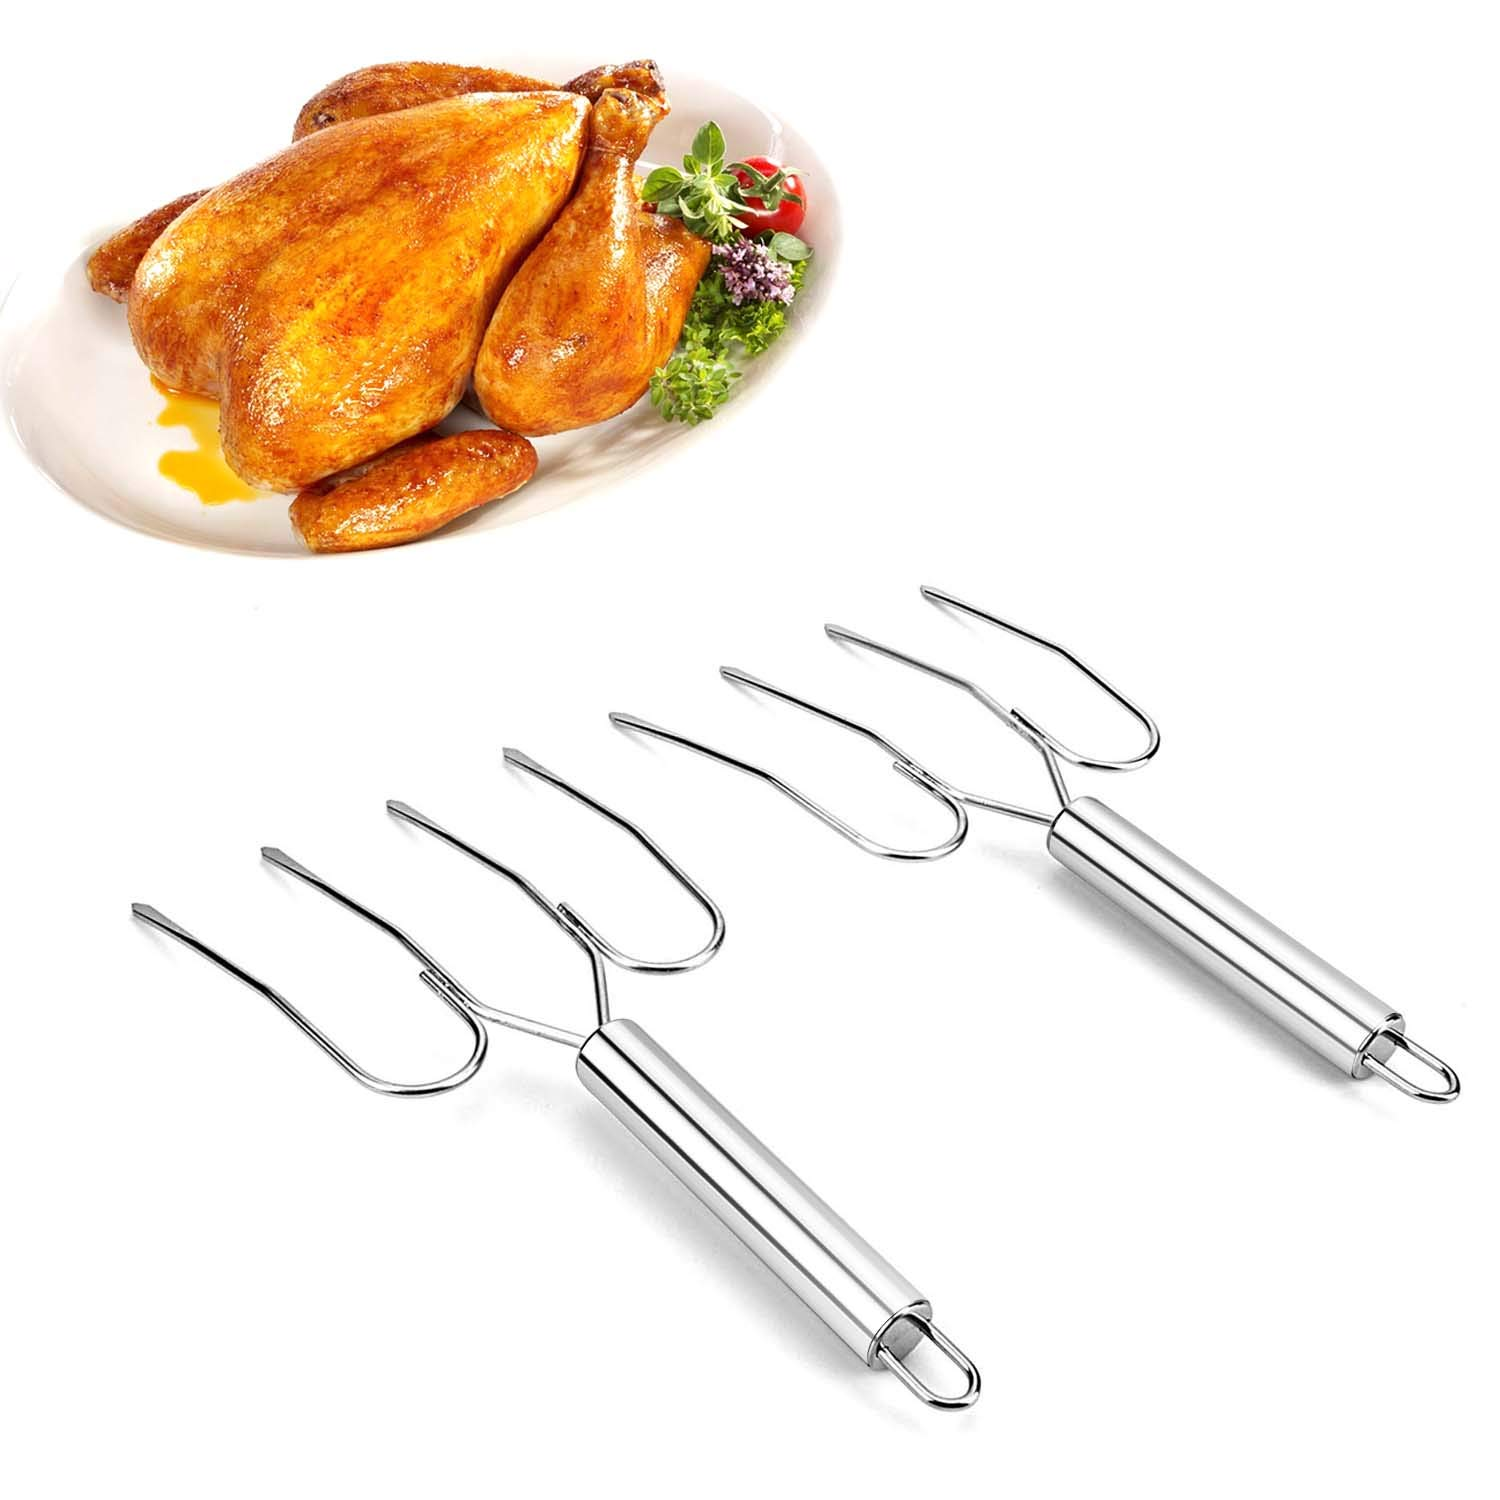 Thanksgiving Turkey Lifter Serving Set Stainless Steel Roaster Poultry Forks,Set of 2 by TripleLife